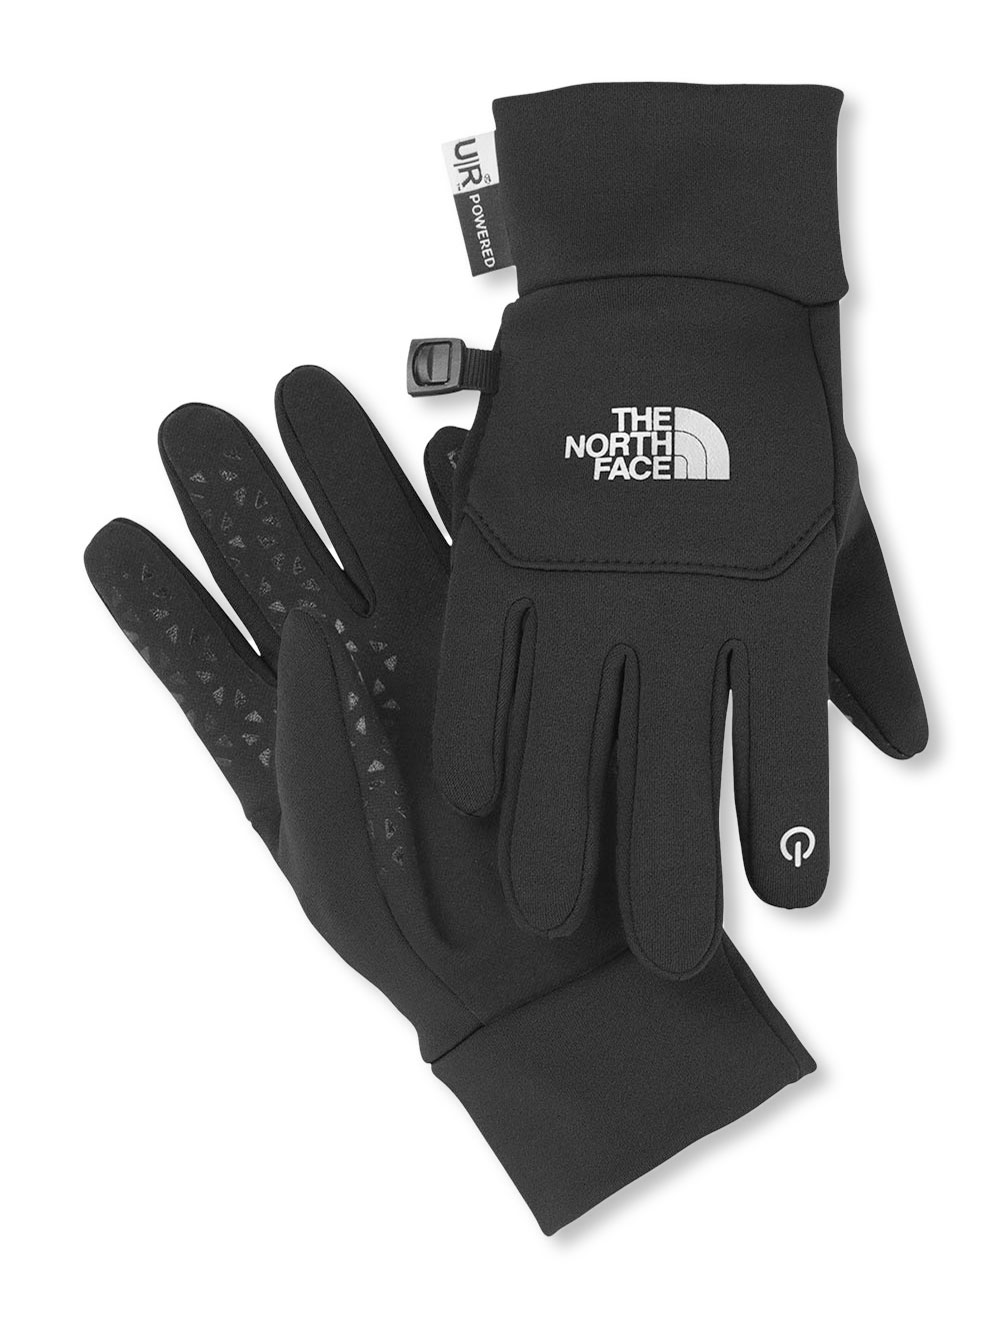 The North Face Youth Etip Glove (Sizes S - L)